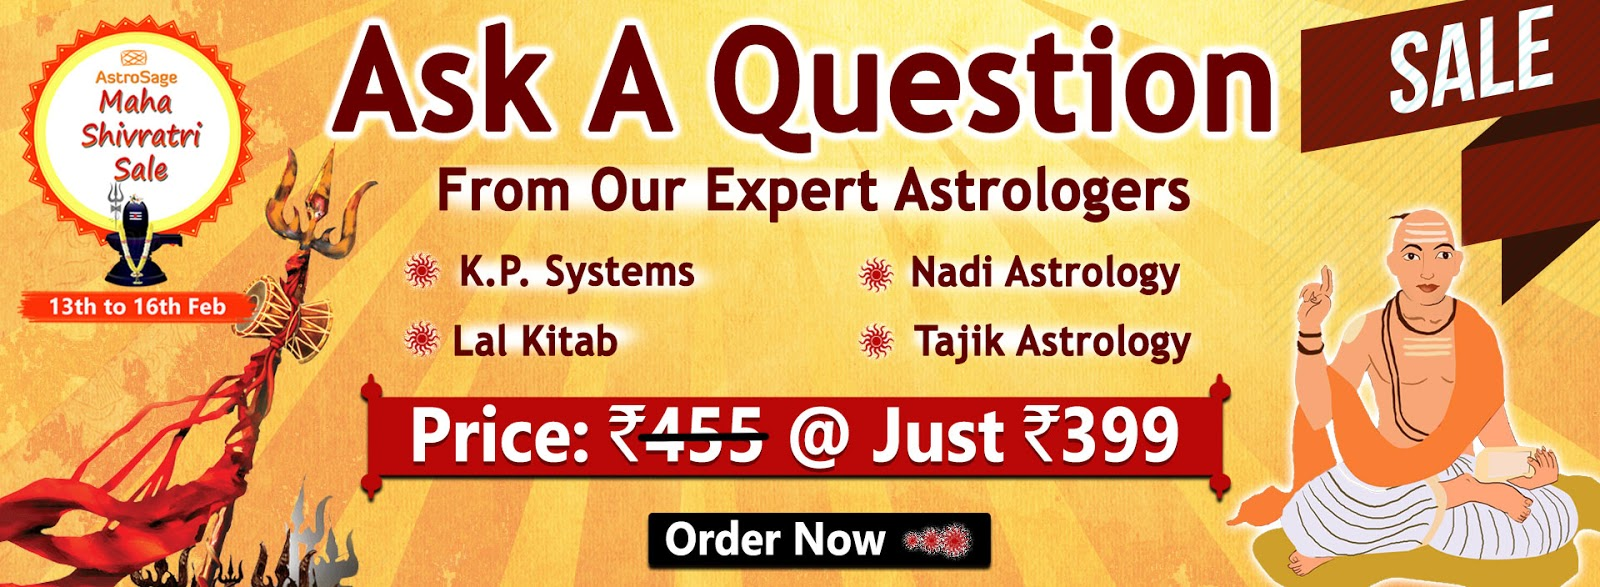 Lal kitab birth chart images free any chart examples vedic birth chart in hindi choice image free any chart examples lal kitab birth chart choice nvjuhfo Images